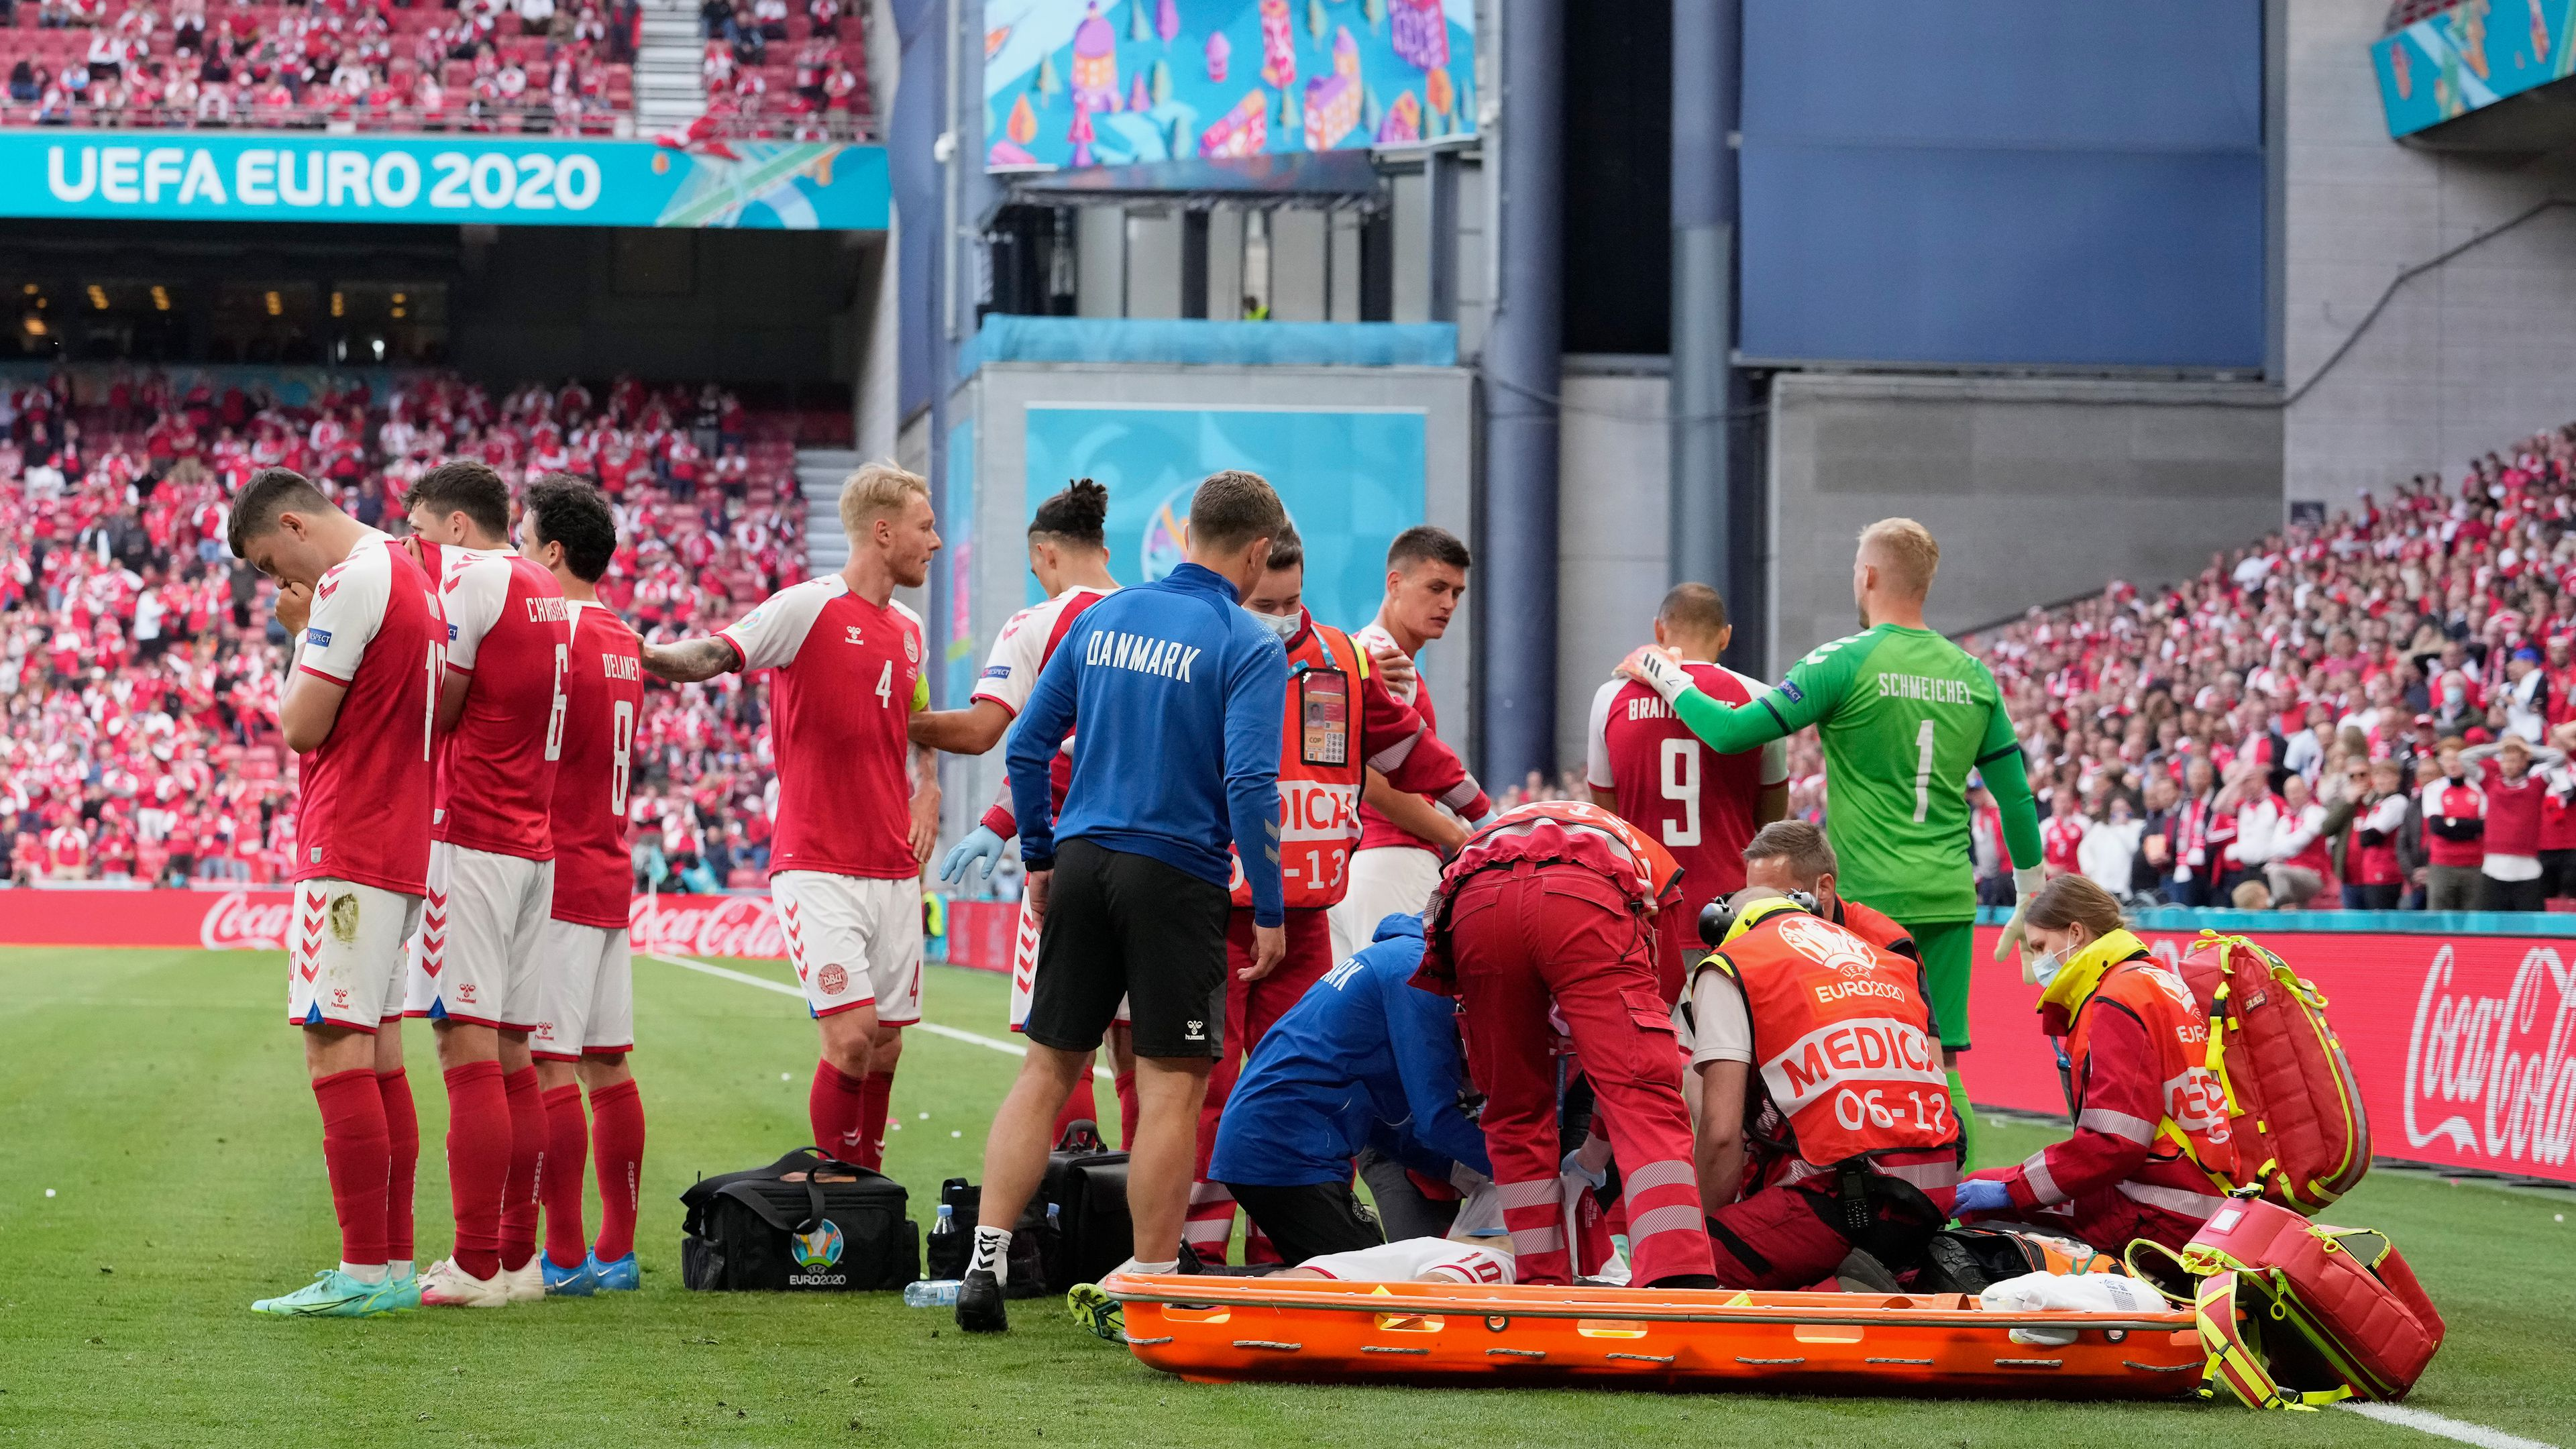 UEFA Euro 2020: World in shock as Denmark player Christian Eriksen collapses mid-game, given CPR